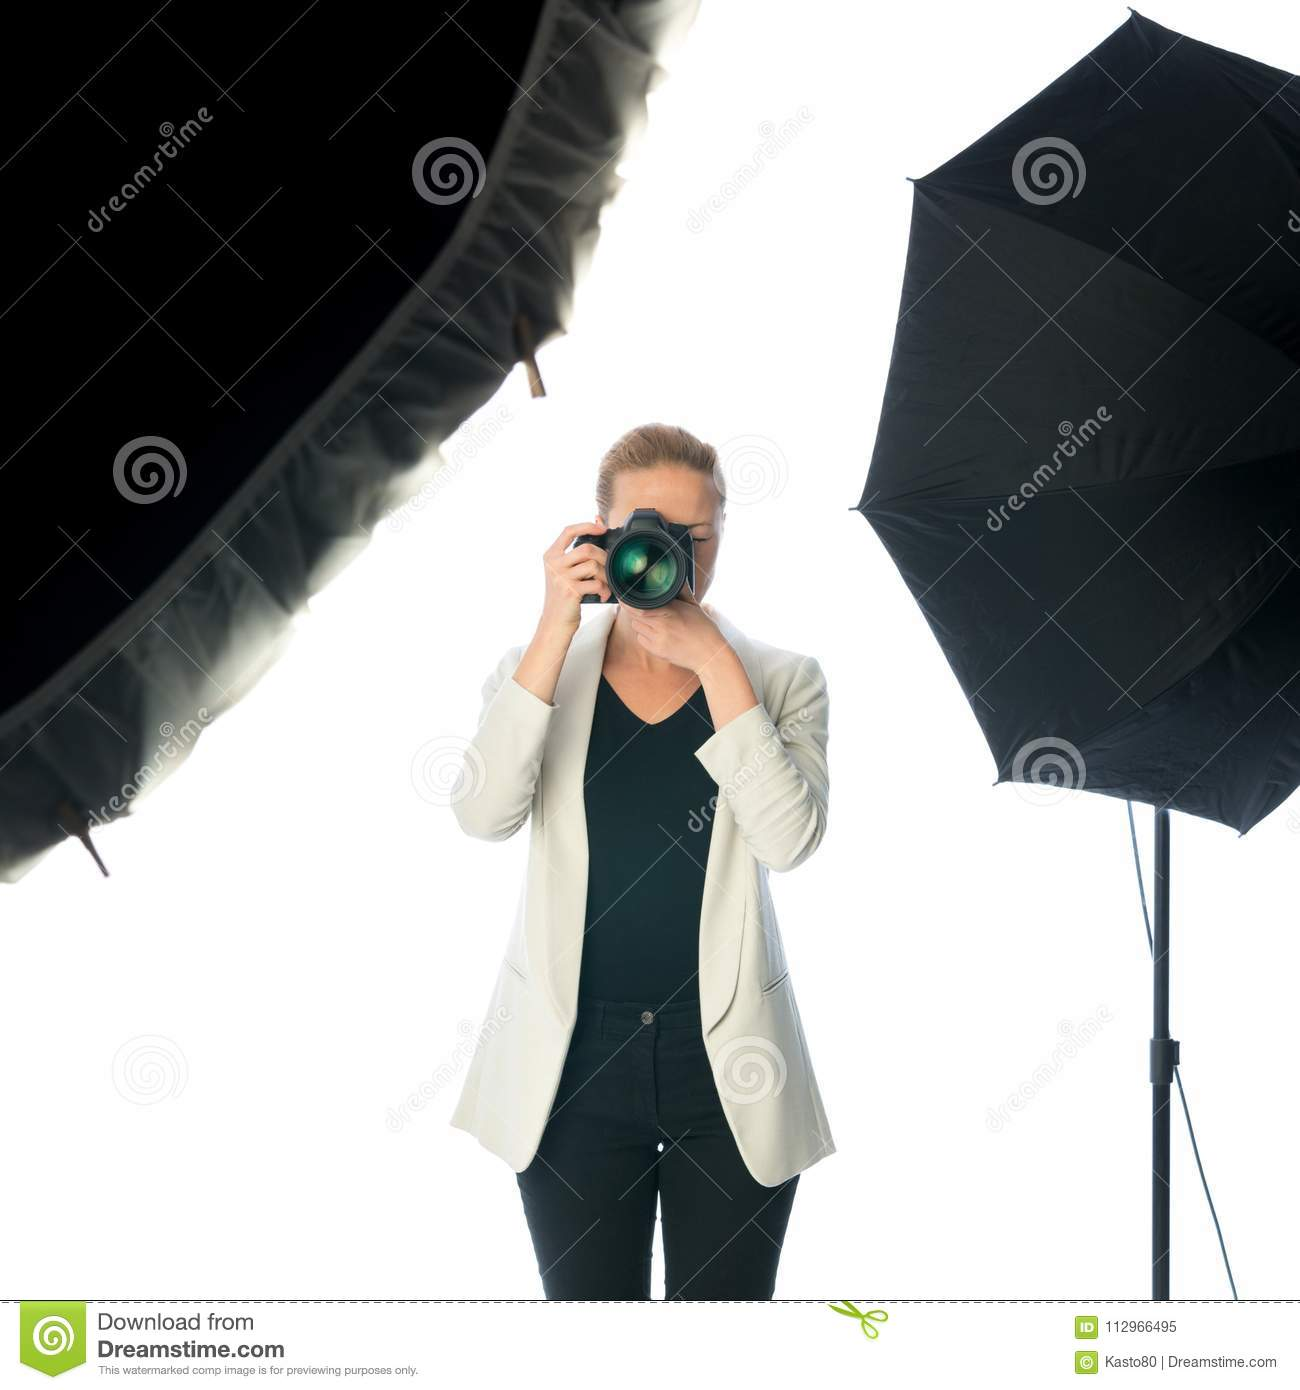 Download Woman Photographer Takes Images With Dslr Camera In Photo Studio Stock Image